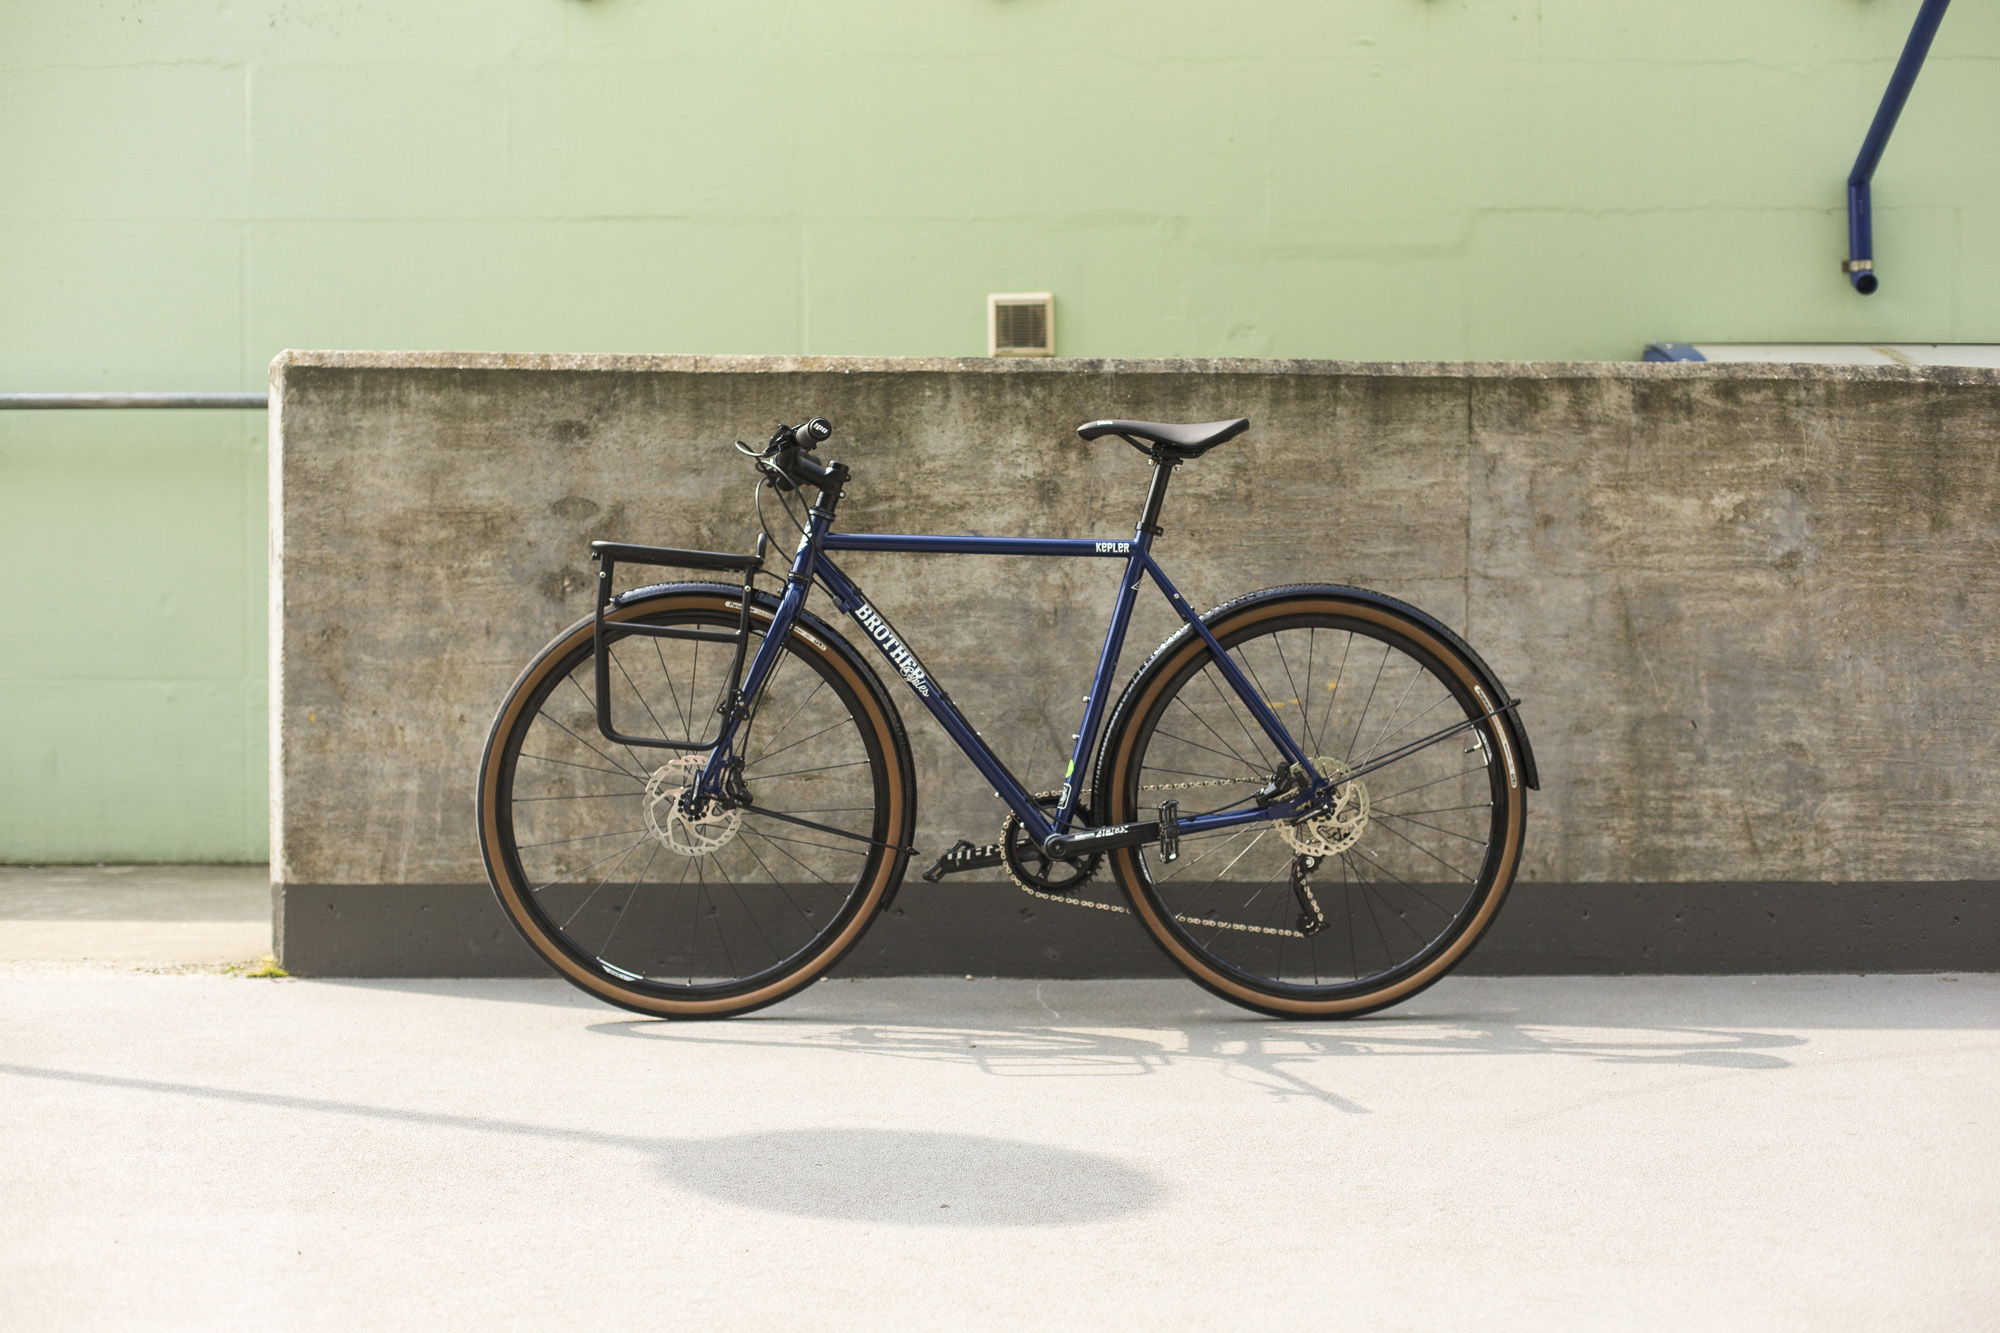 seabass-cycles-instore-bikes-17-april-2019-brother-cycles-kepler-disc-custom-build-midnight-blue-5093.jpg